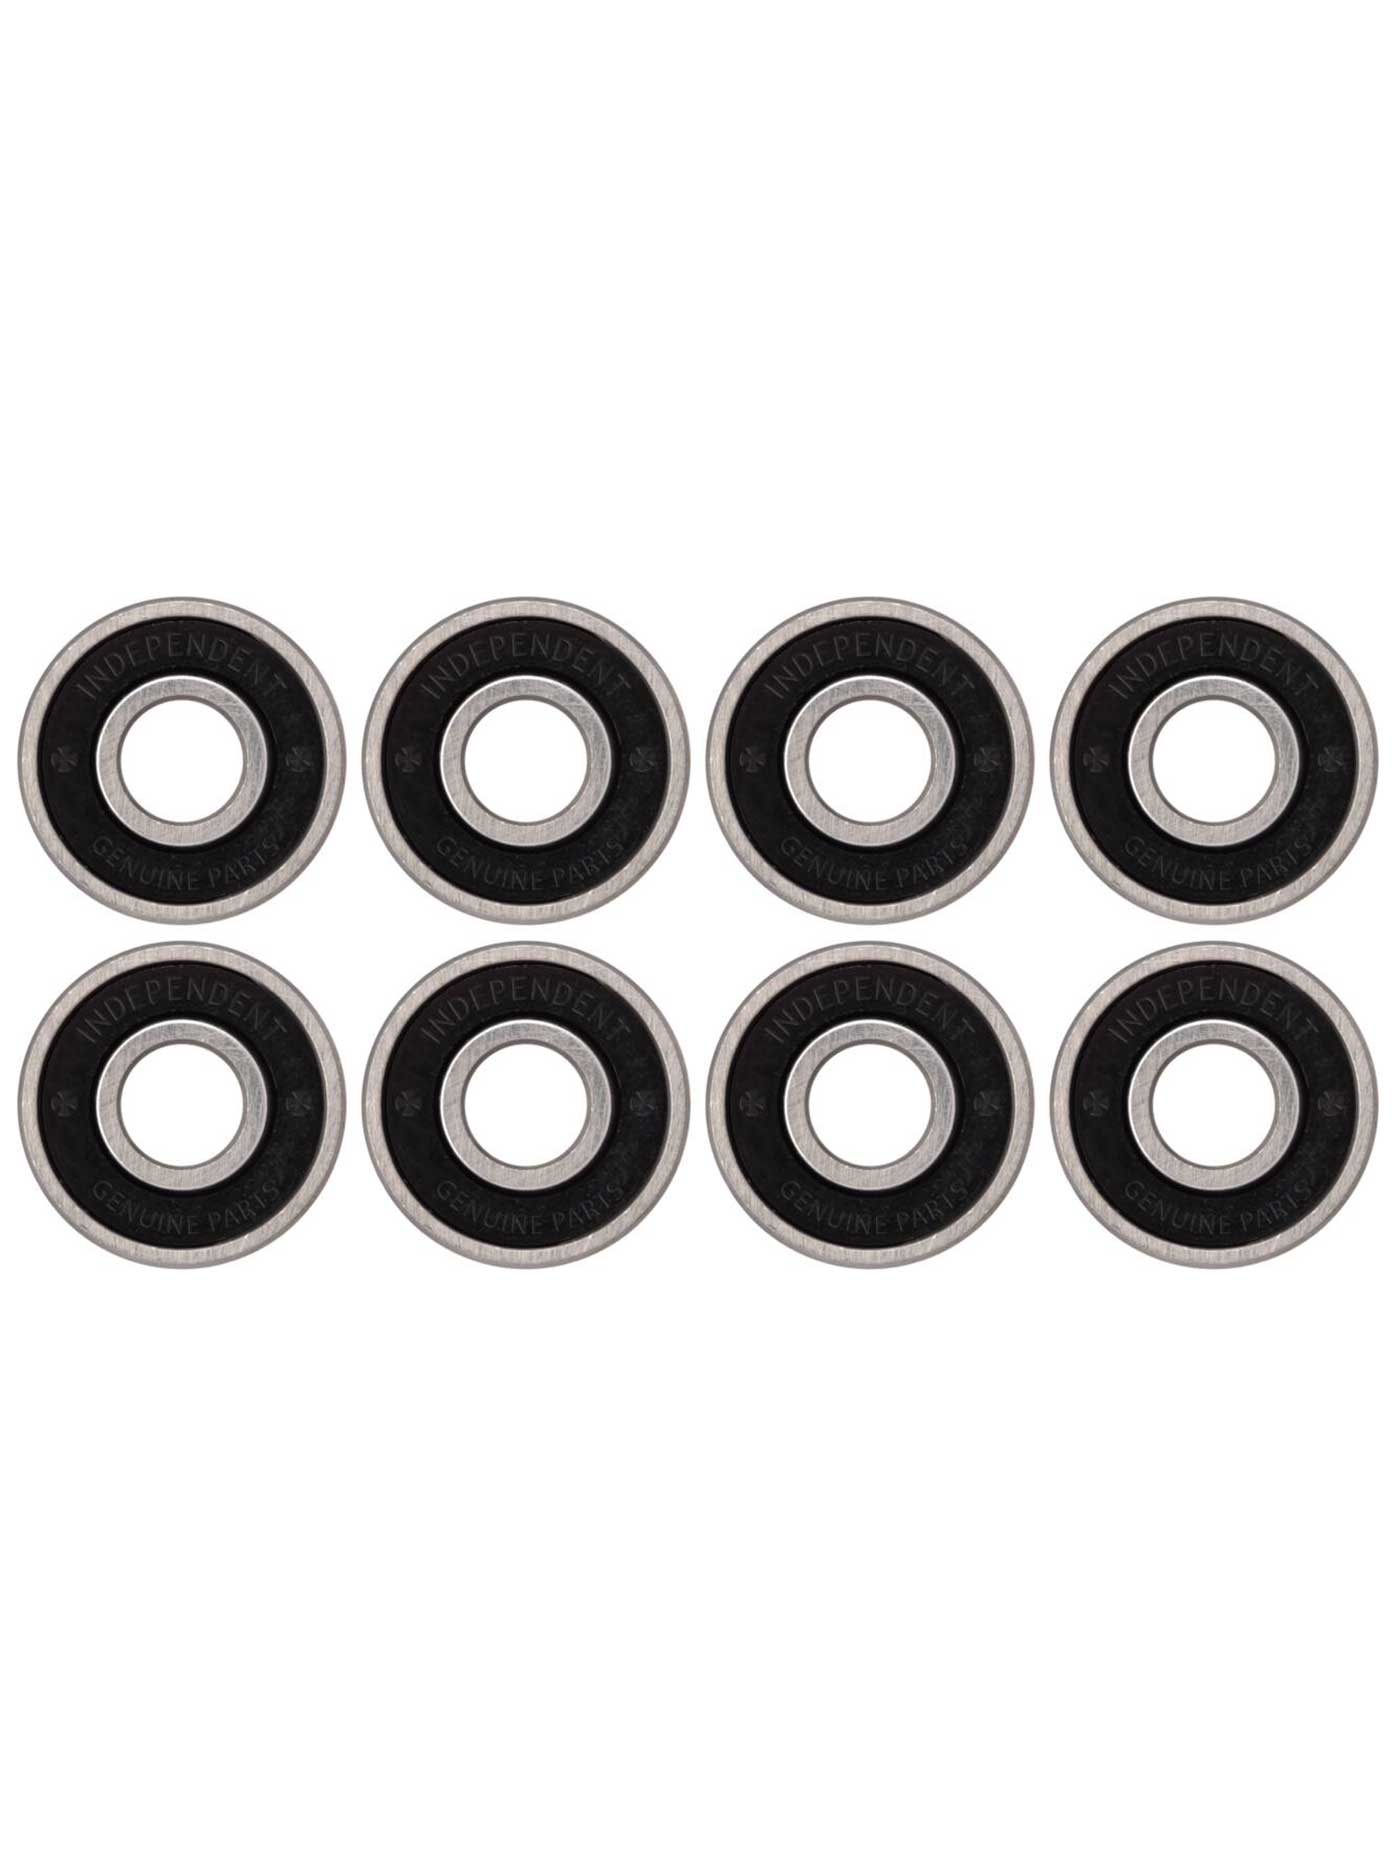 Genuine Parts Black Bearings